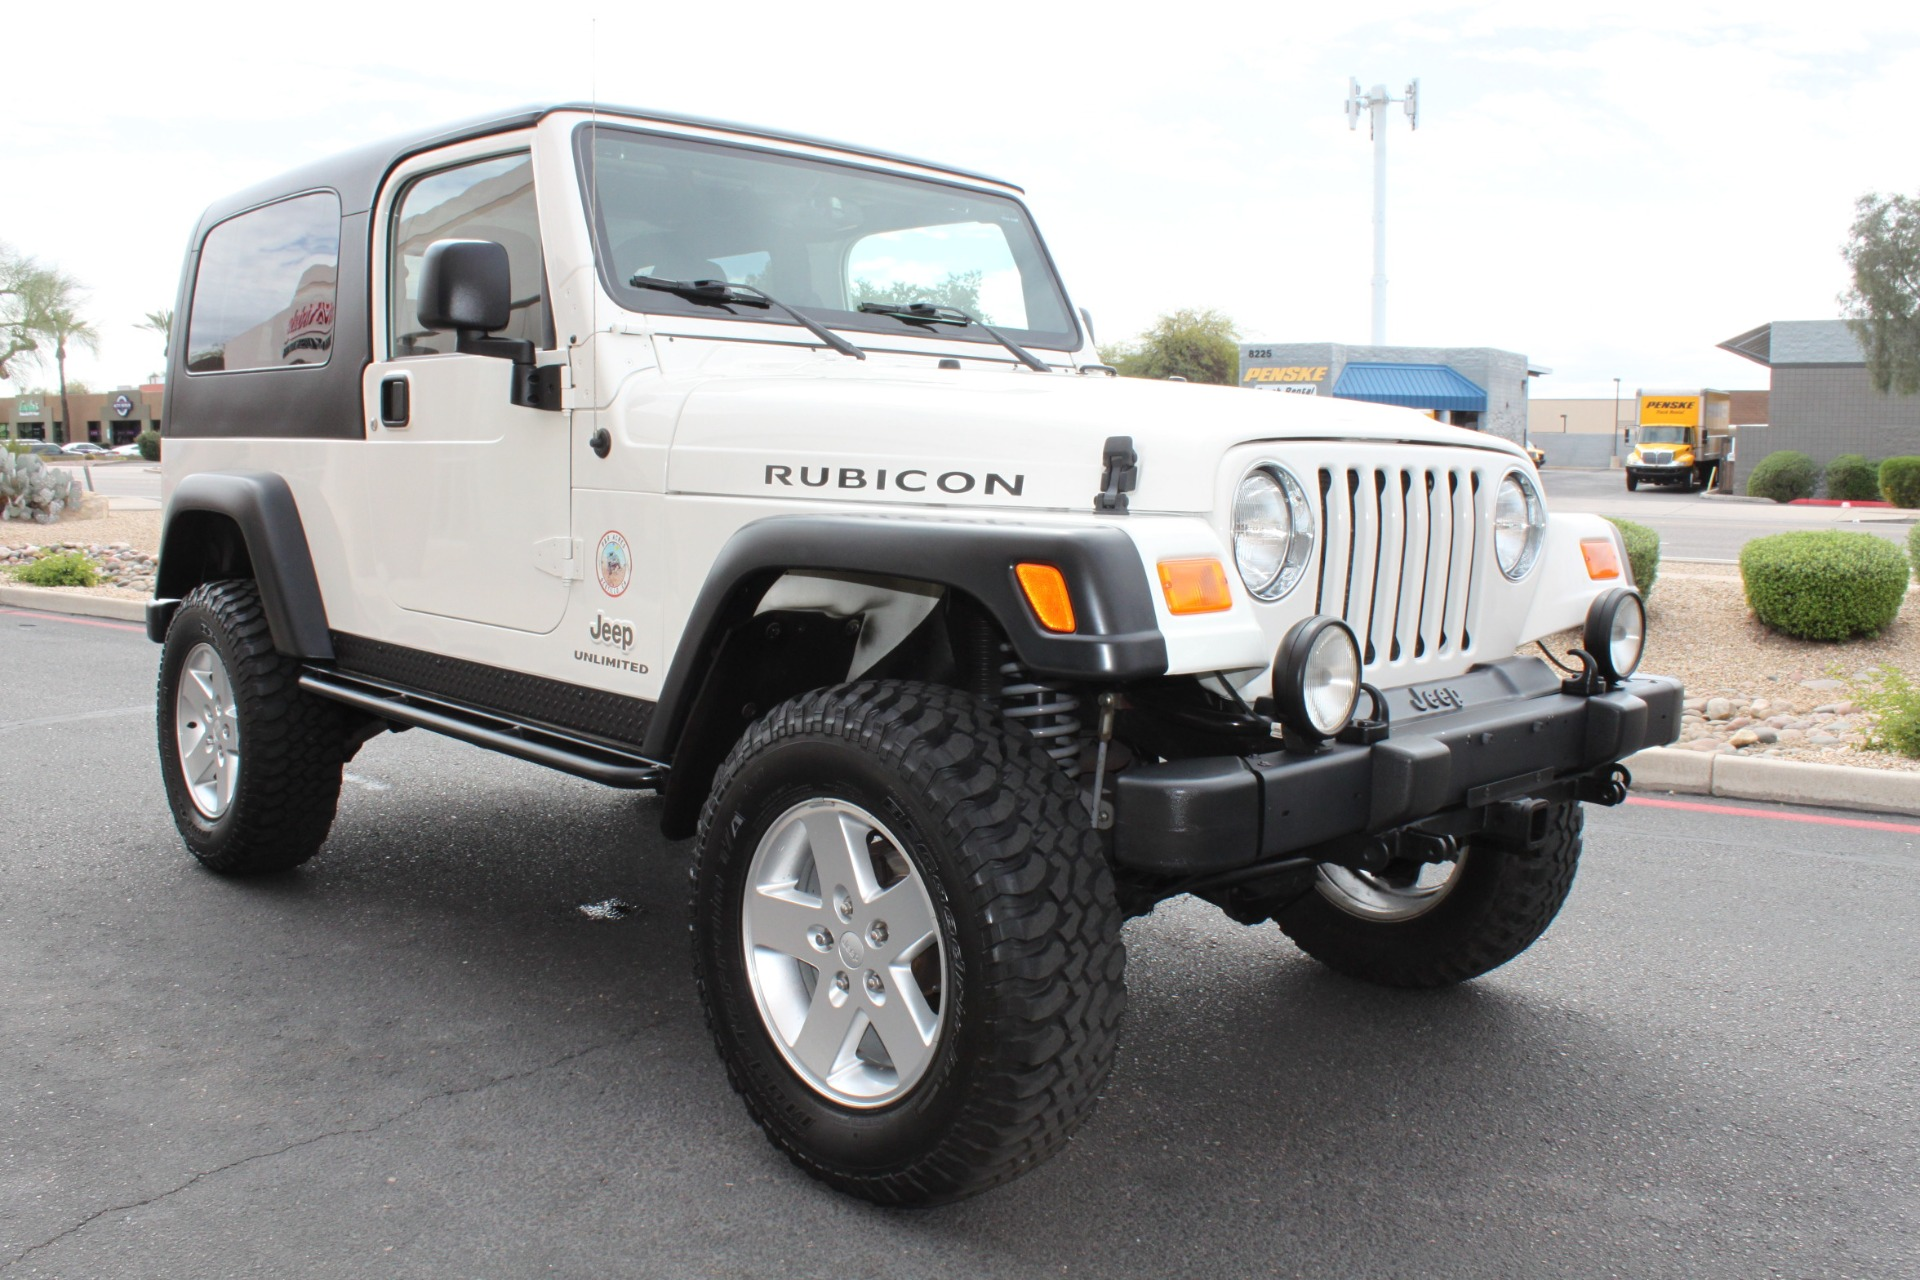 Used-2006-Jeep-Wrangler-Unlimited-Rubicon-LWB-Mercedes-Benz